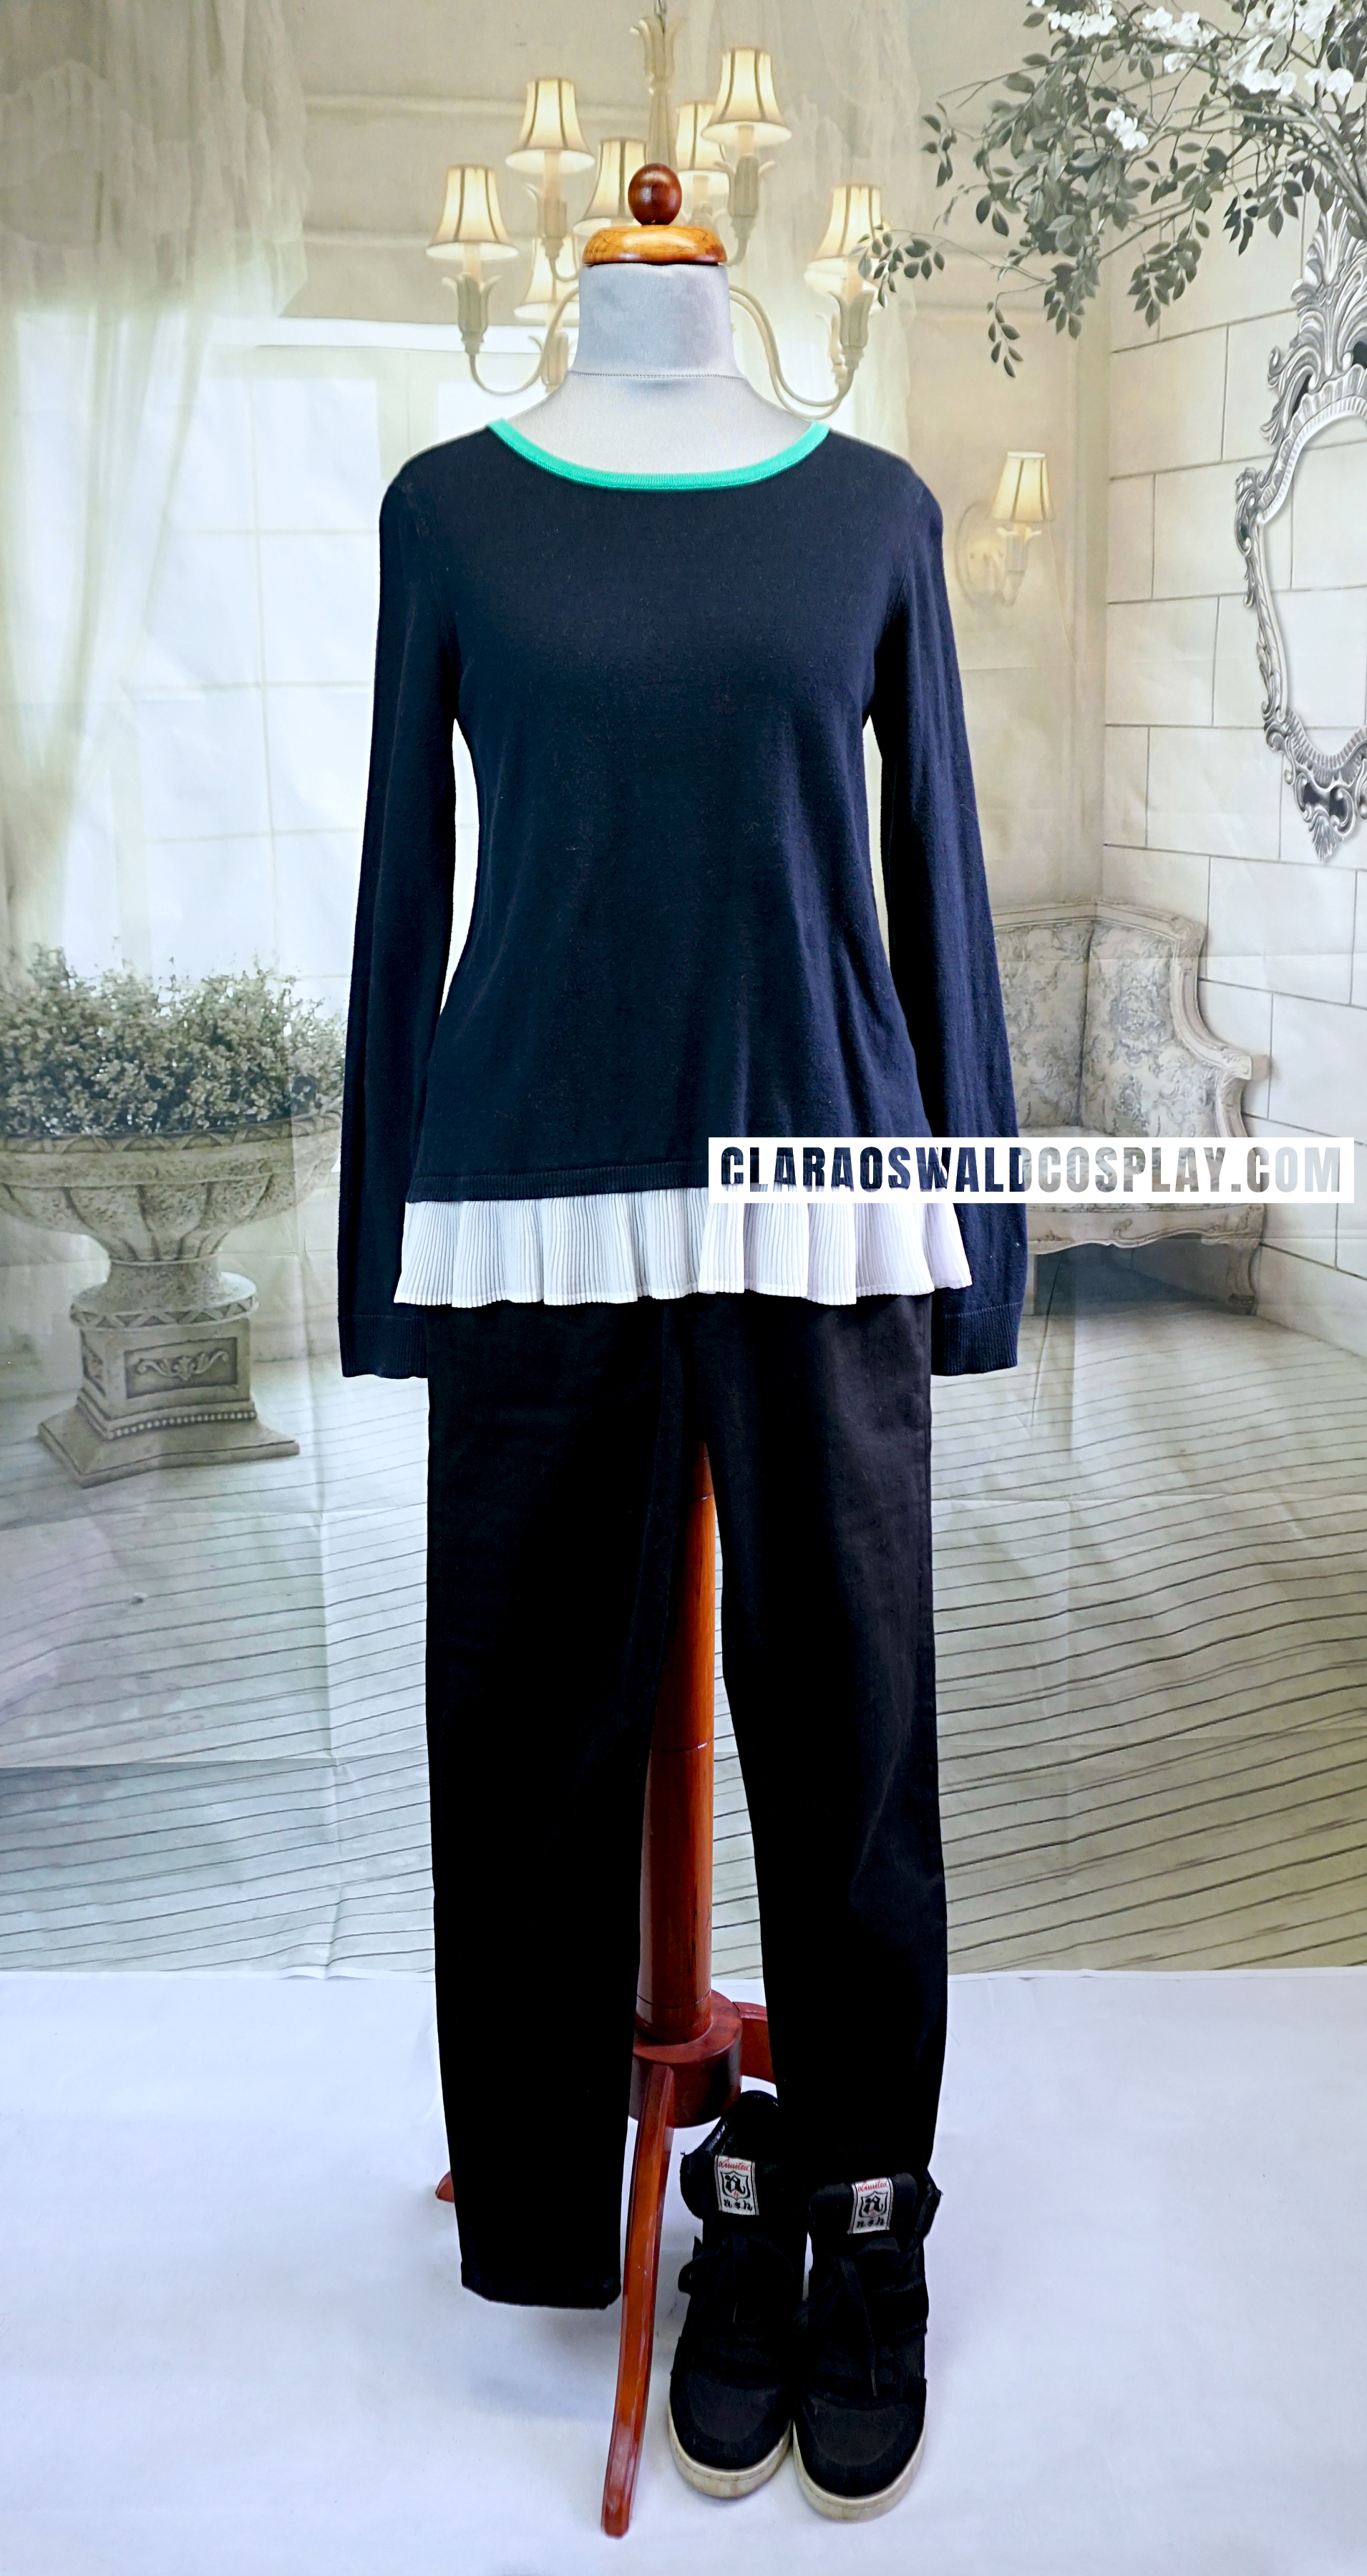 The whole outfit worn by Clara Oswald in the opening scene of Face the Raven. It consists of the Claudie Pierlot Frill Jumper, ASH Cool Wedges and black jeans.